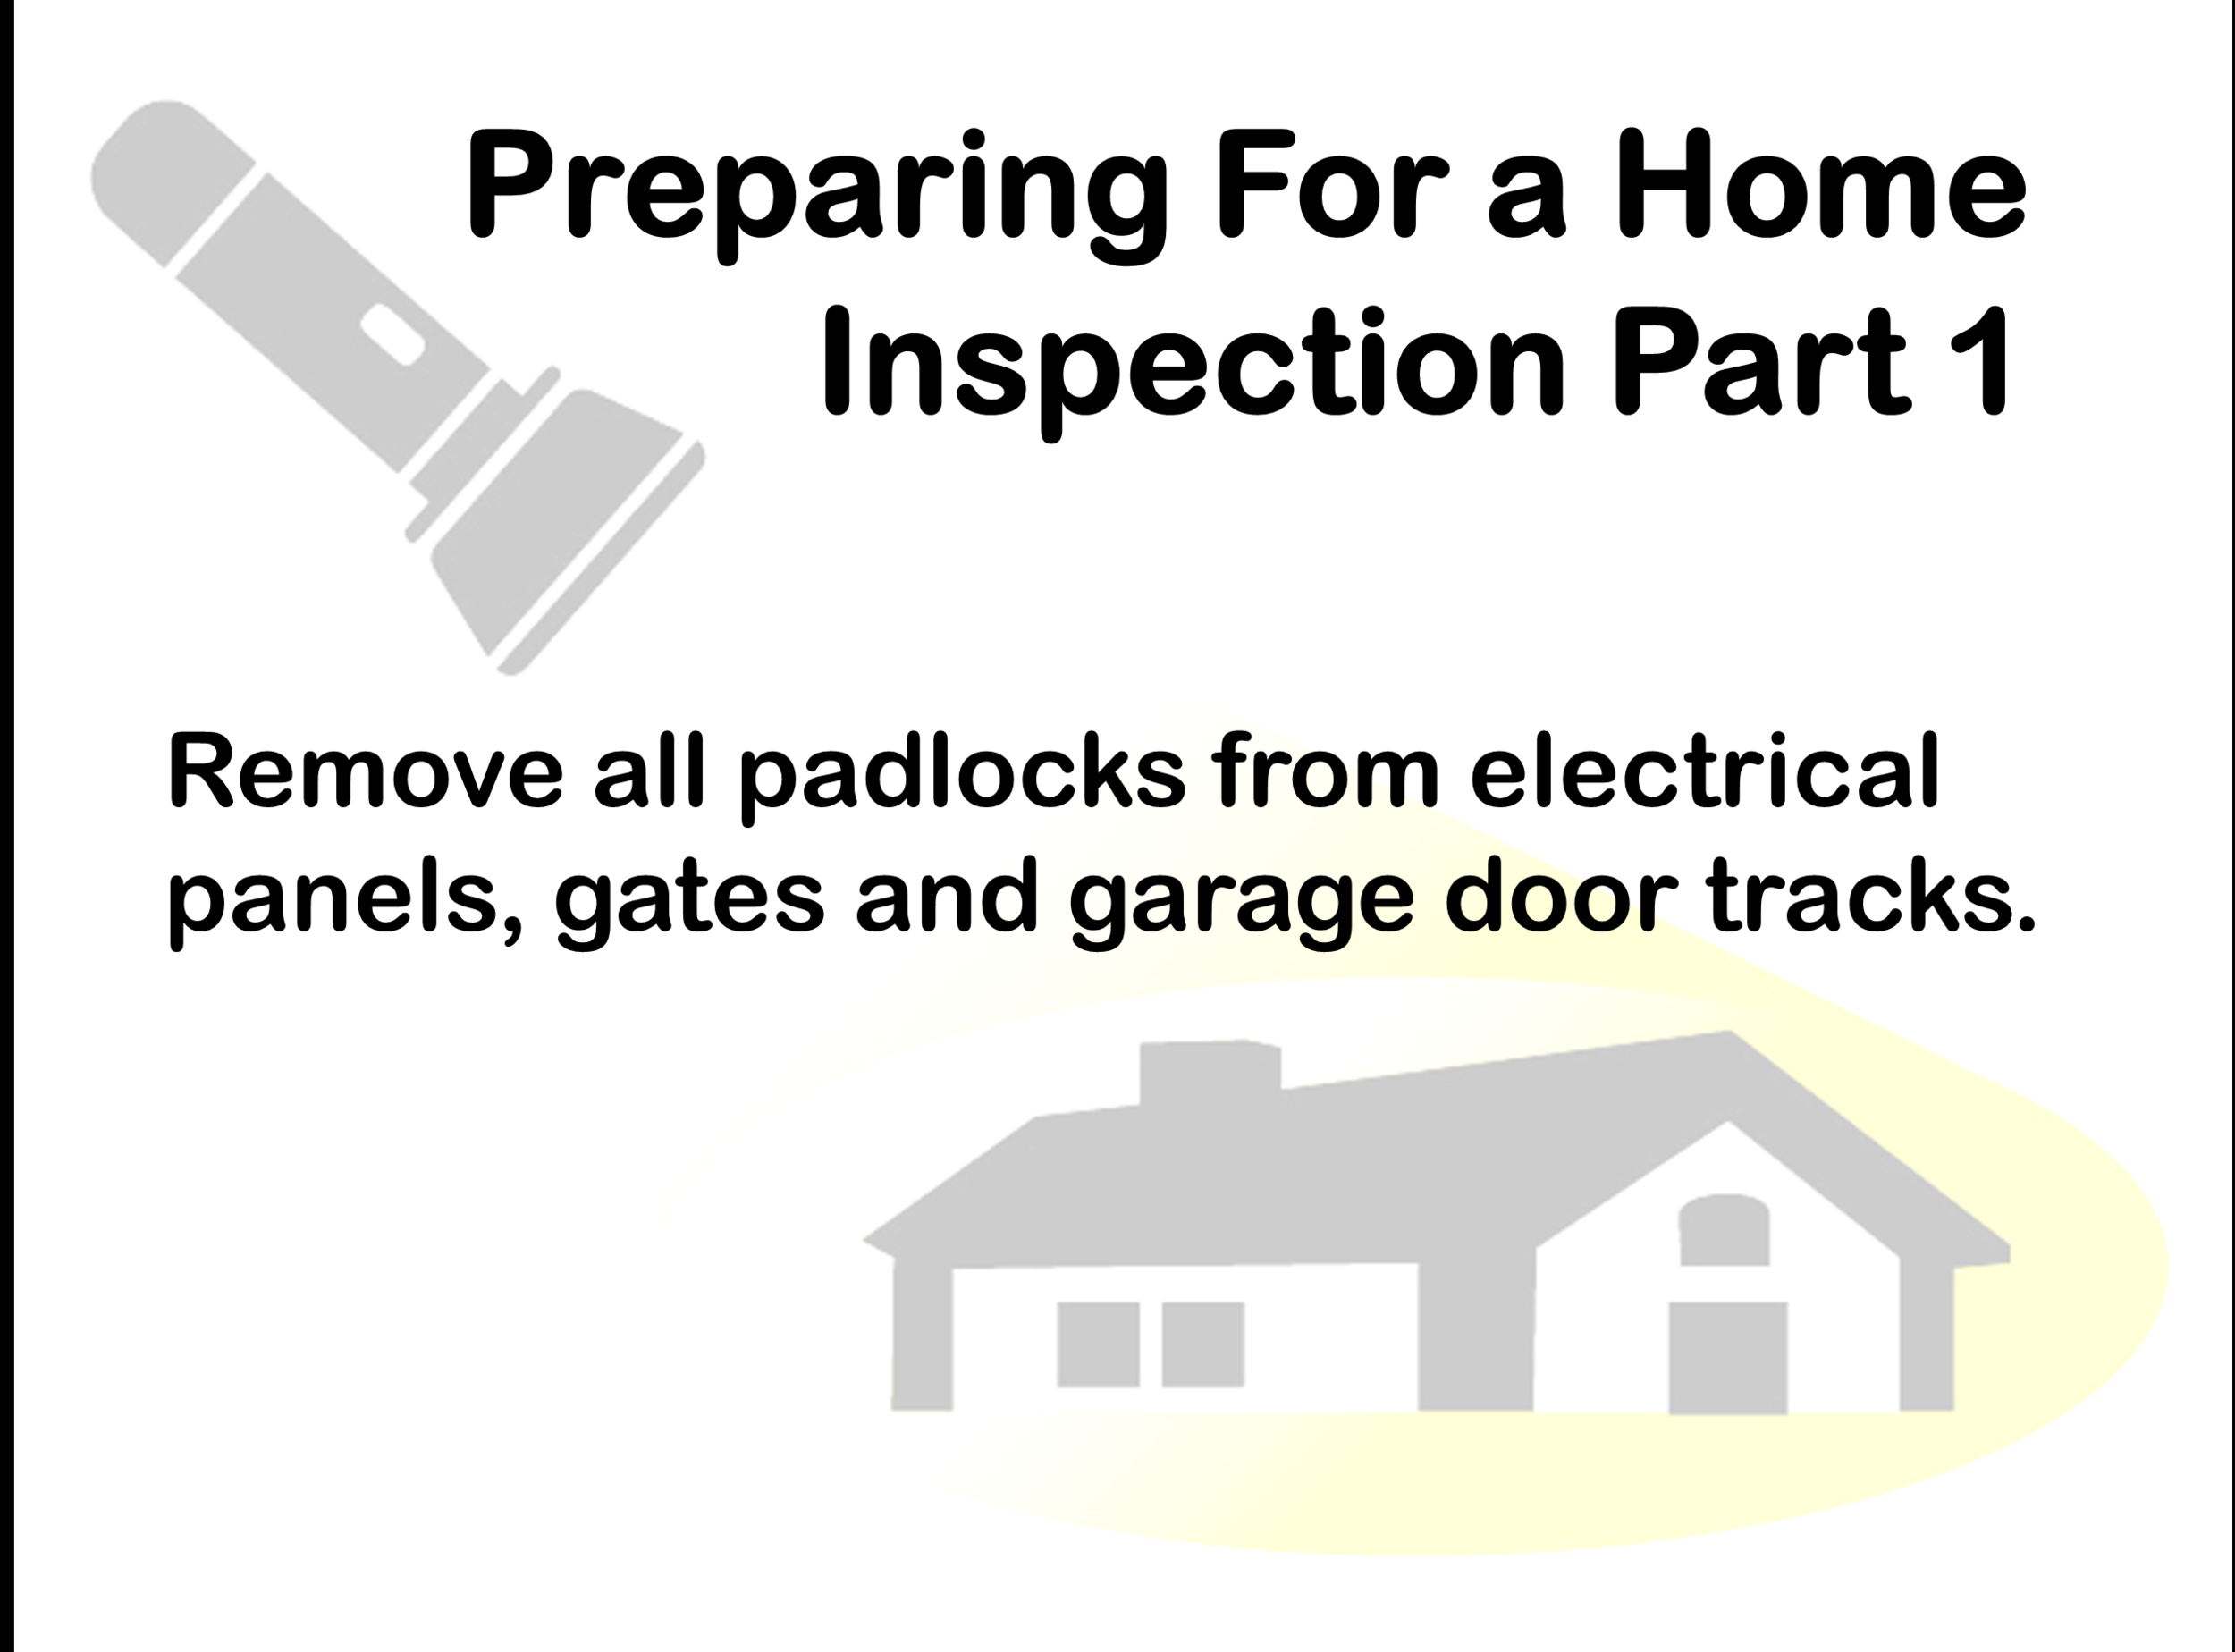 This will avoid additional visits to your home, possible re-inspection fees and reporting items as non-functional or unable to inspect.